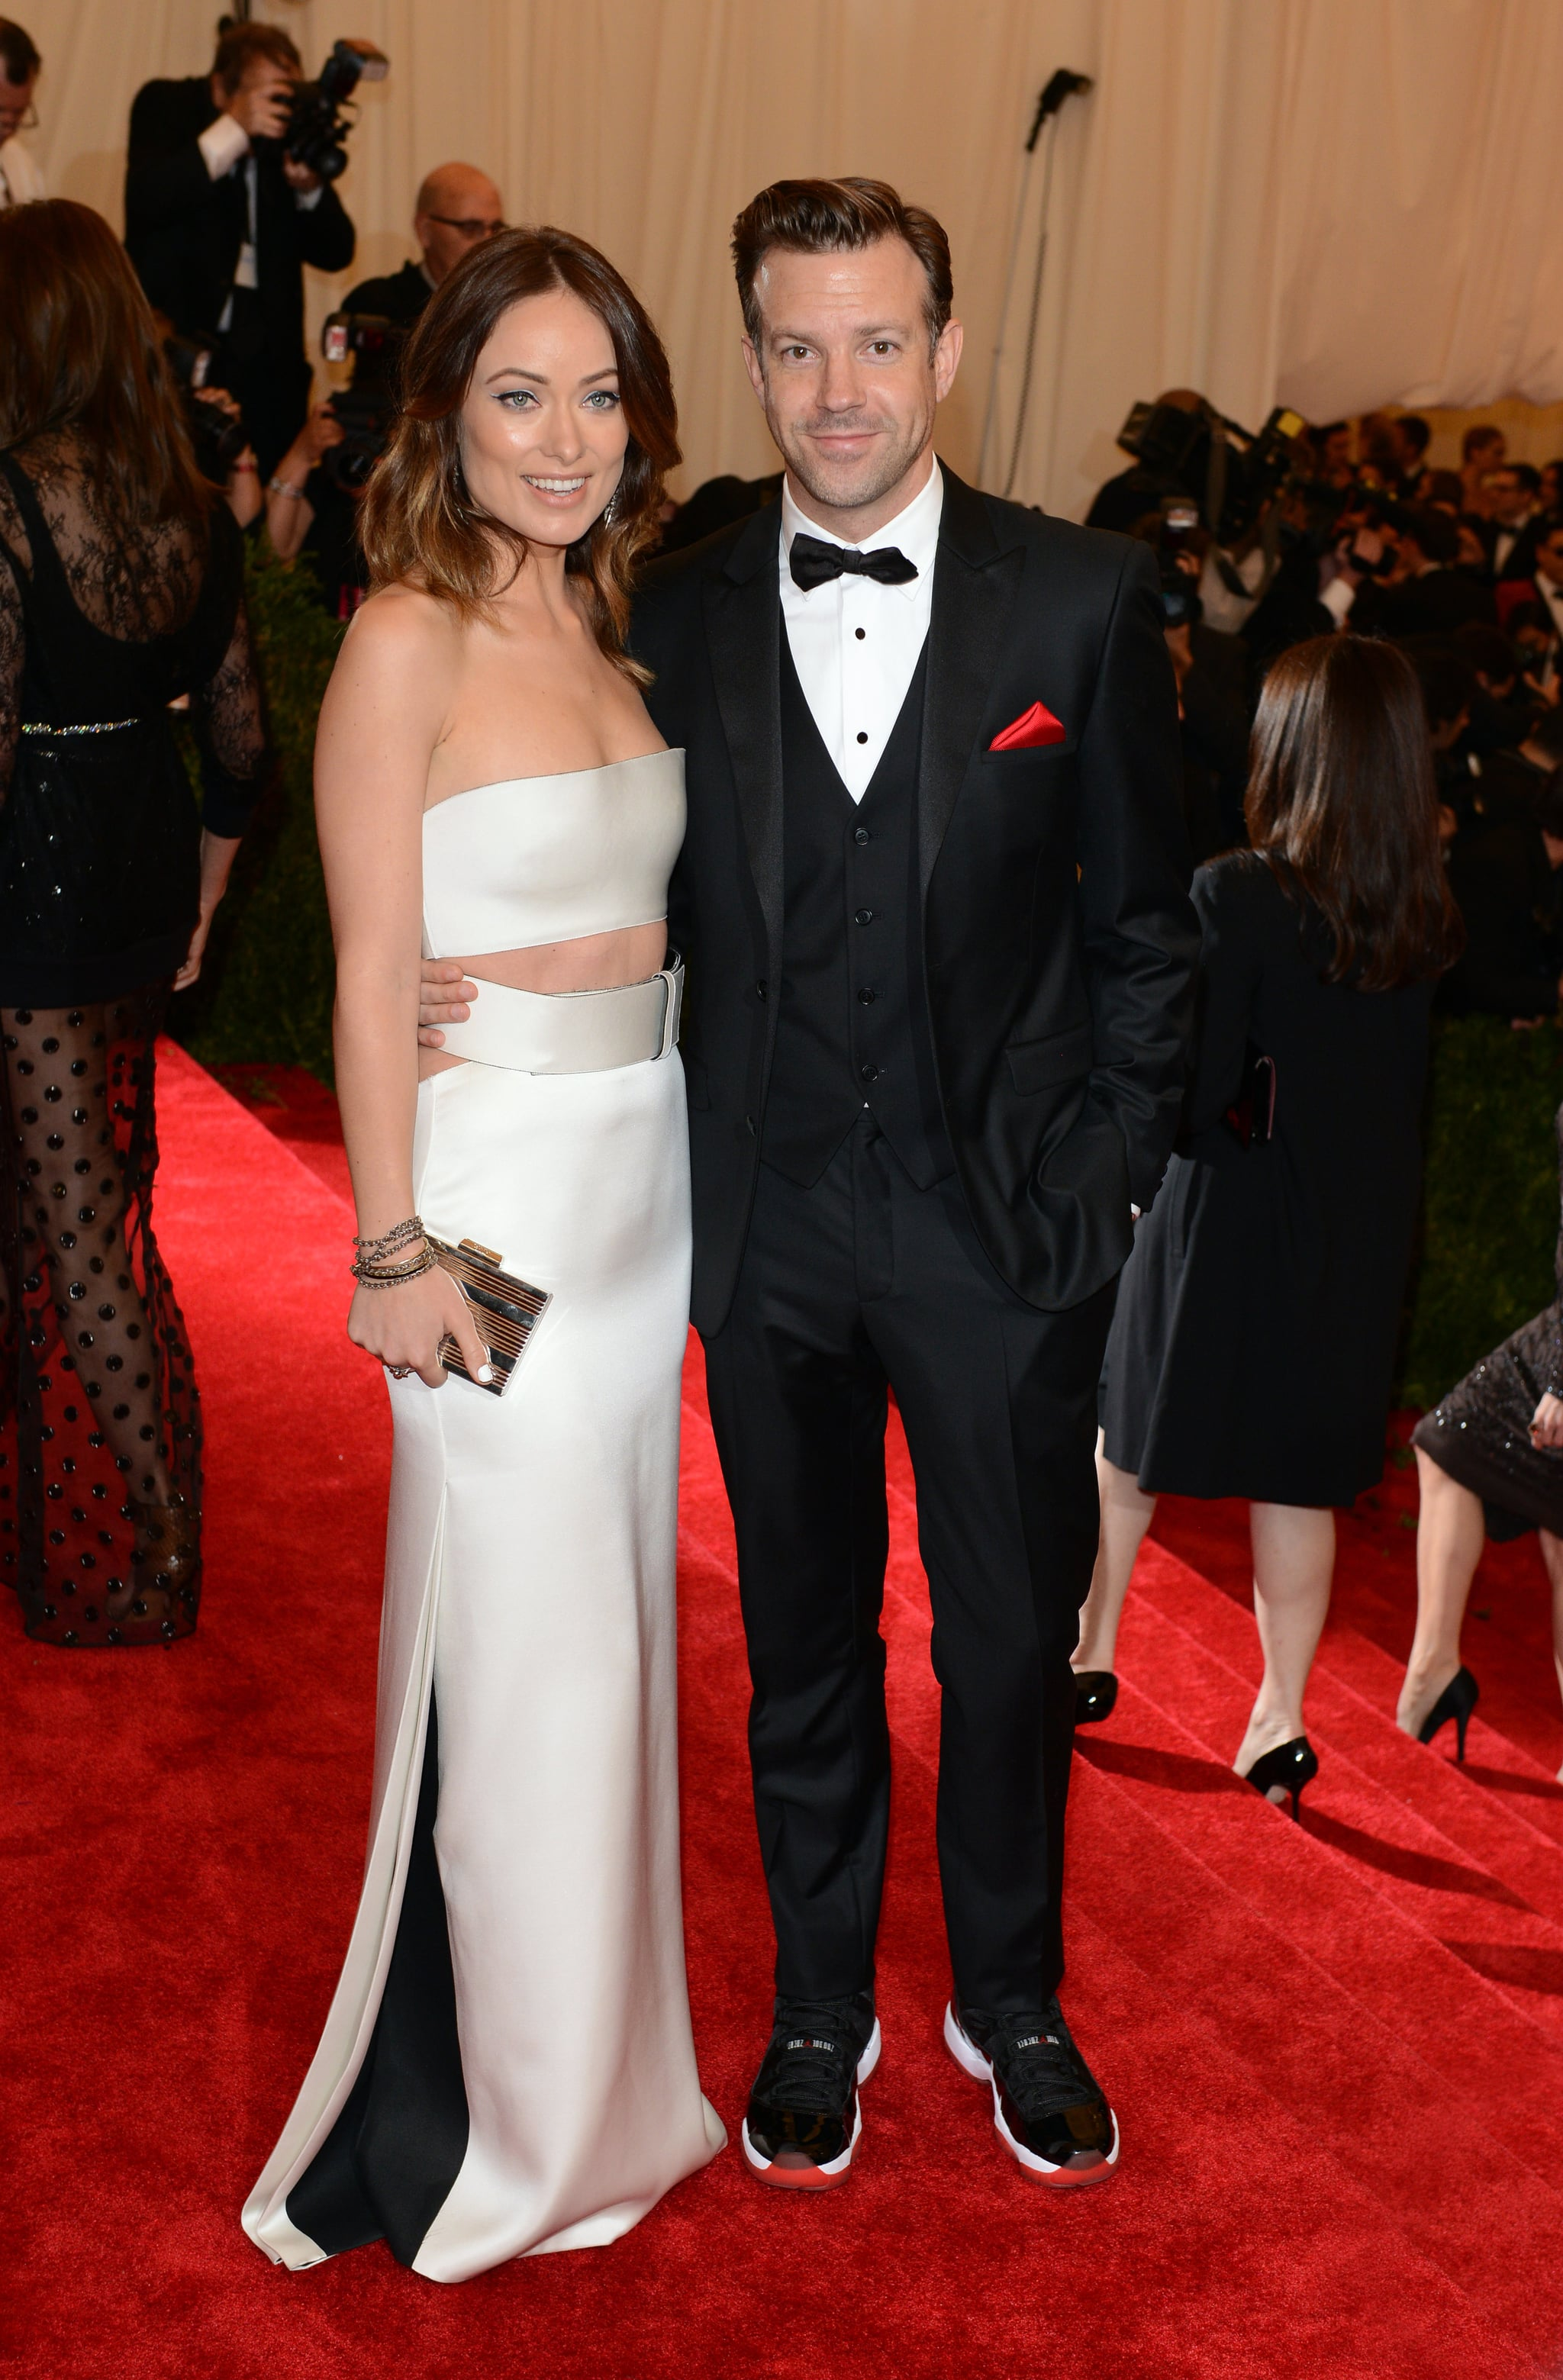 Olivia Wilde and Jason Sudeikis at the 2013 Met Gala